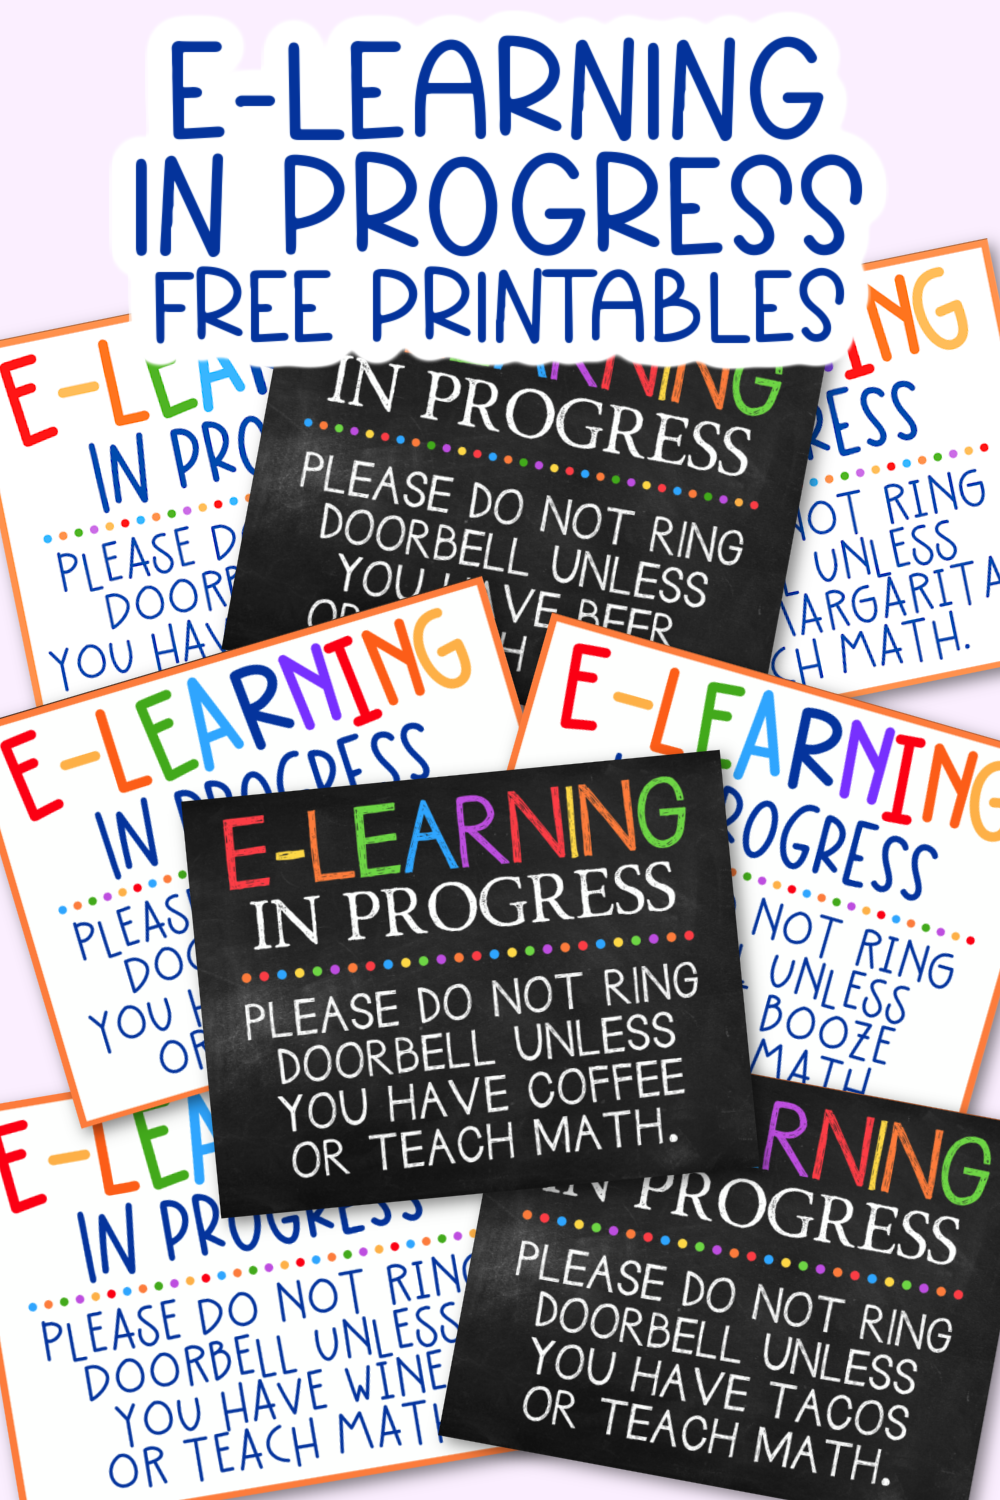 E-Learning in Progress Printables